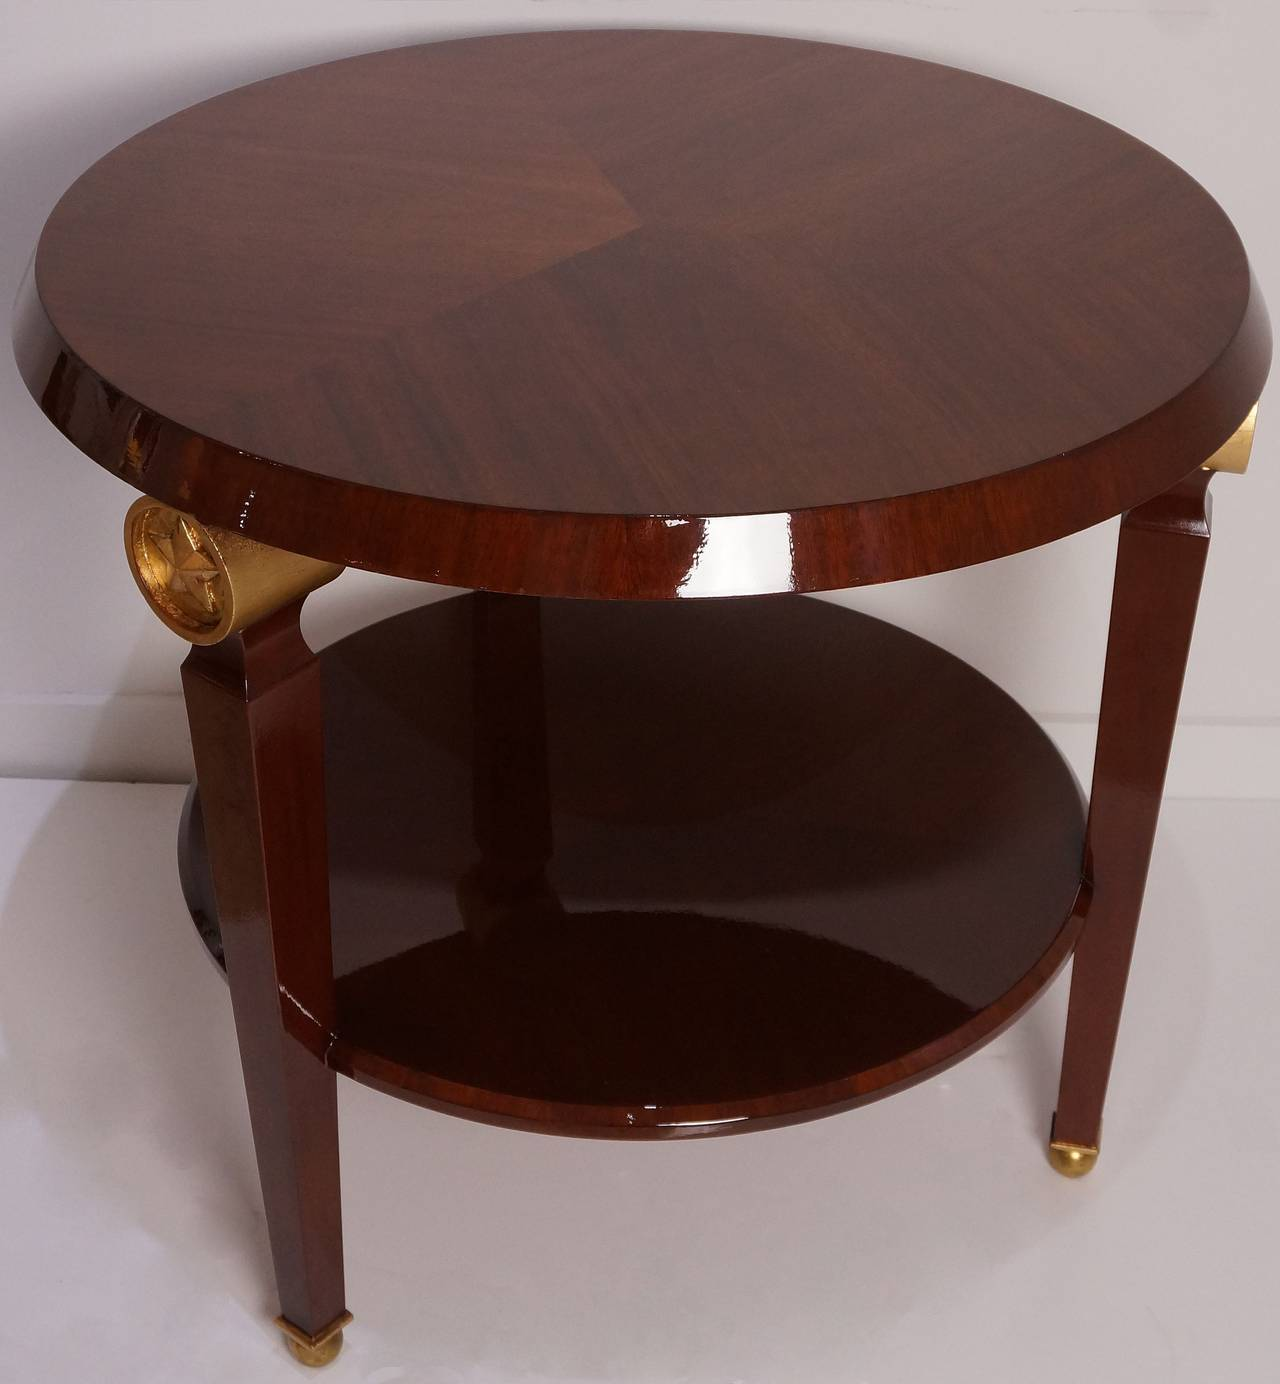 Empire Two-Tiered Center Table in the Style of Maison Jansen, France, 1960s  For Sale